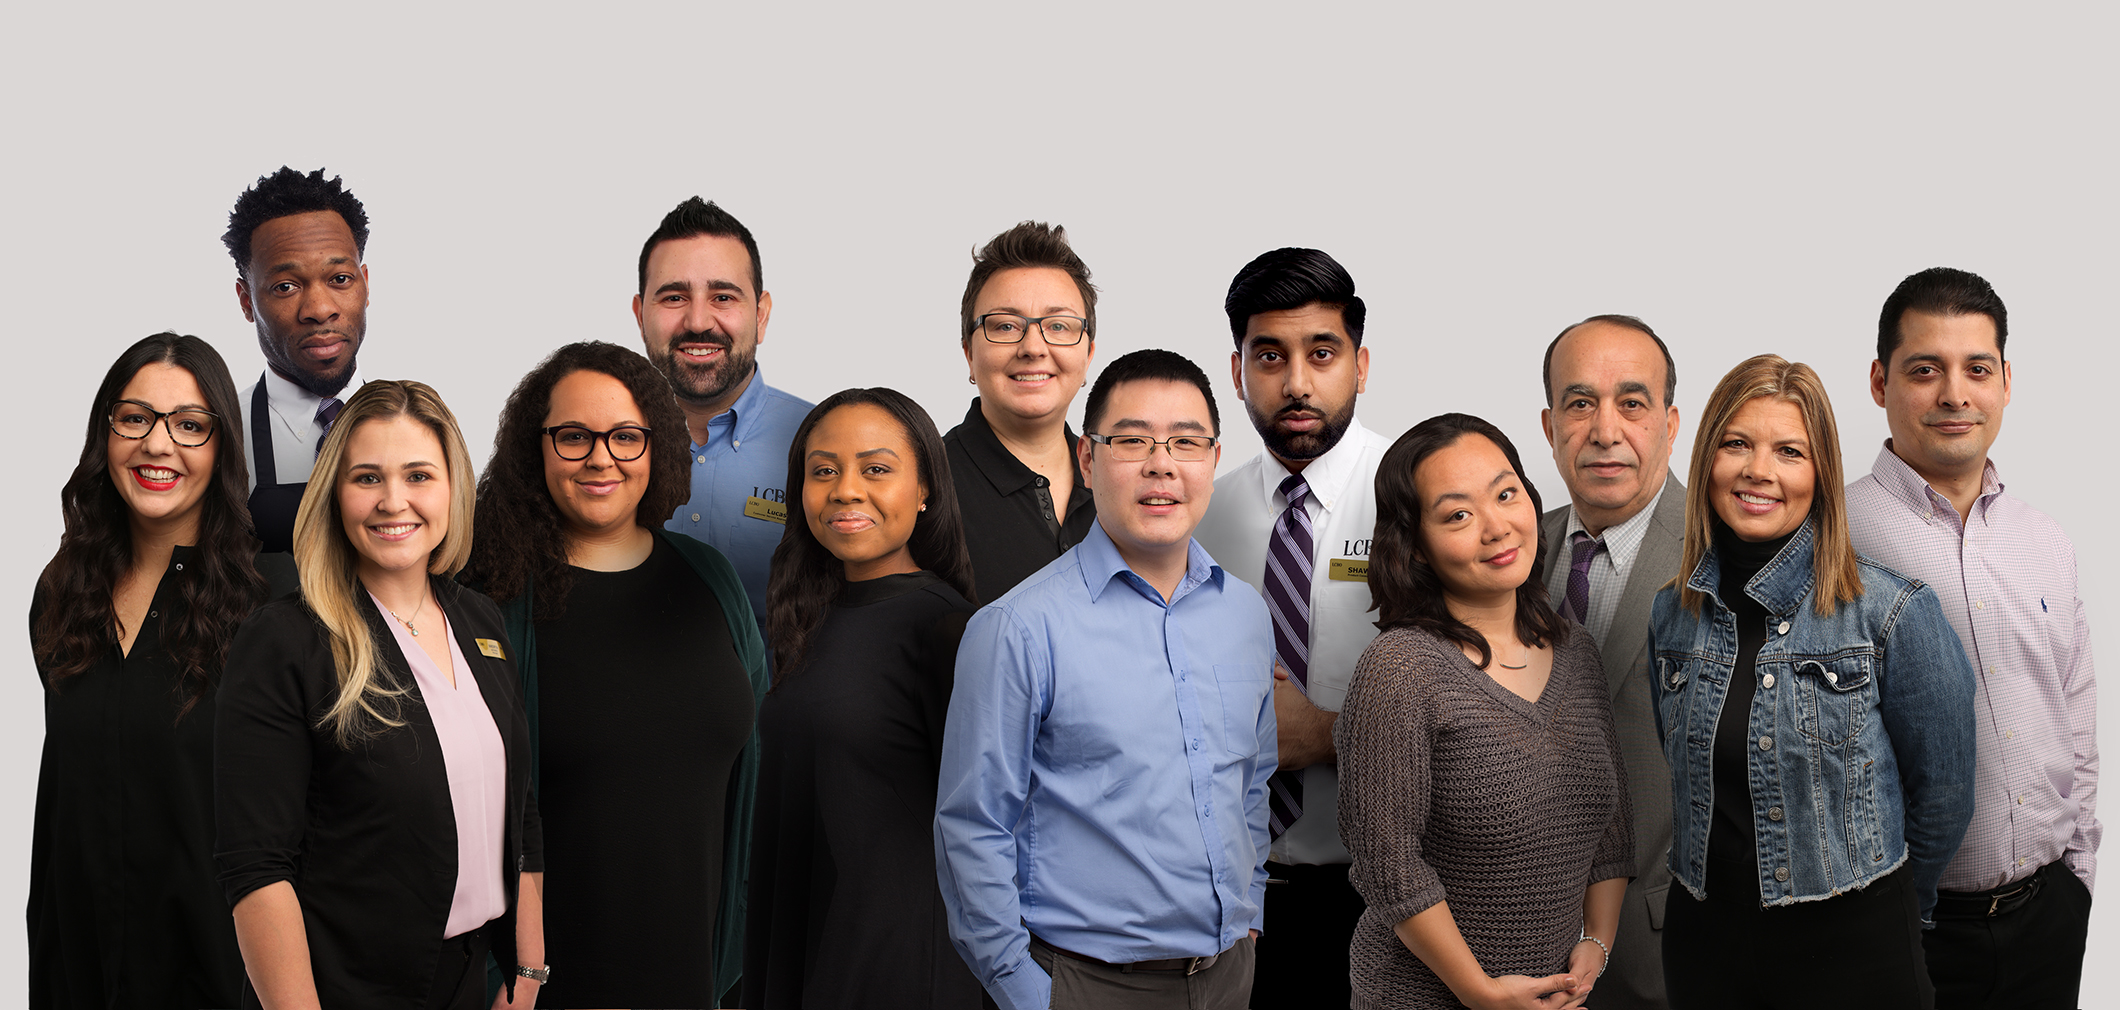 Photo of 14 smiling diverse employees from all areas of the business